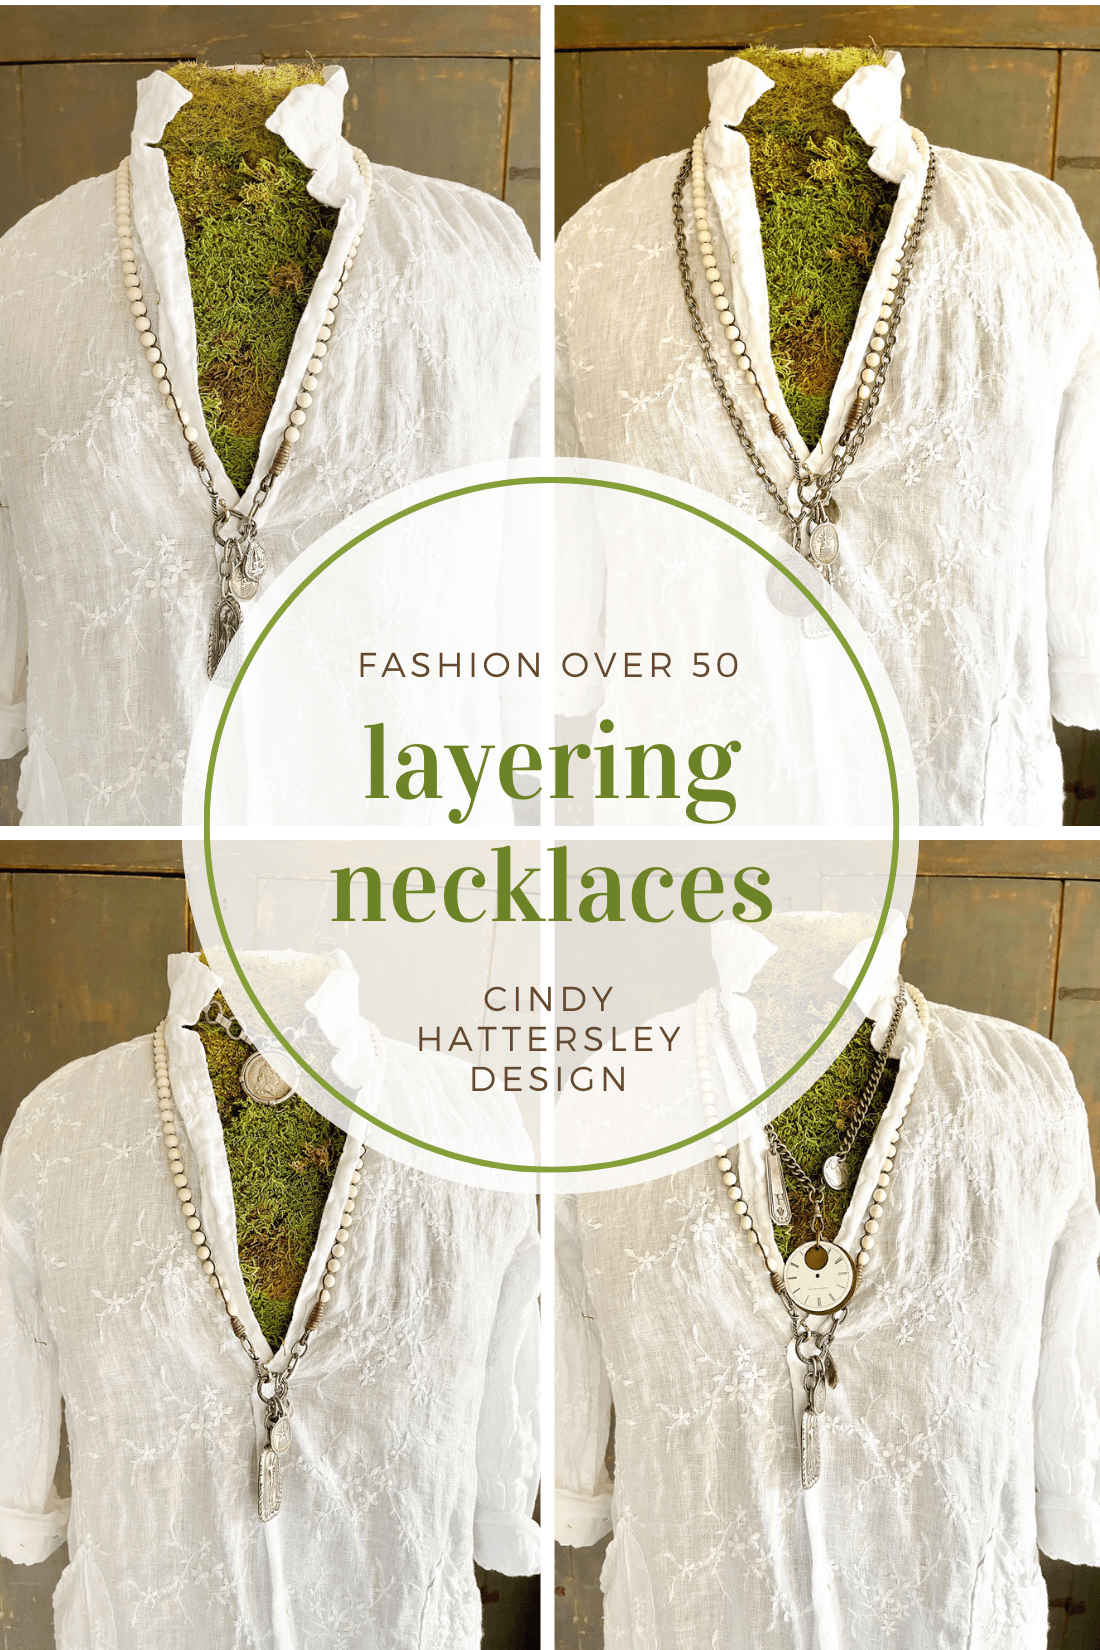 LAYERING NECKLACES CINDY HATTERSLEY DESIGN